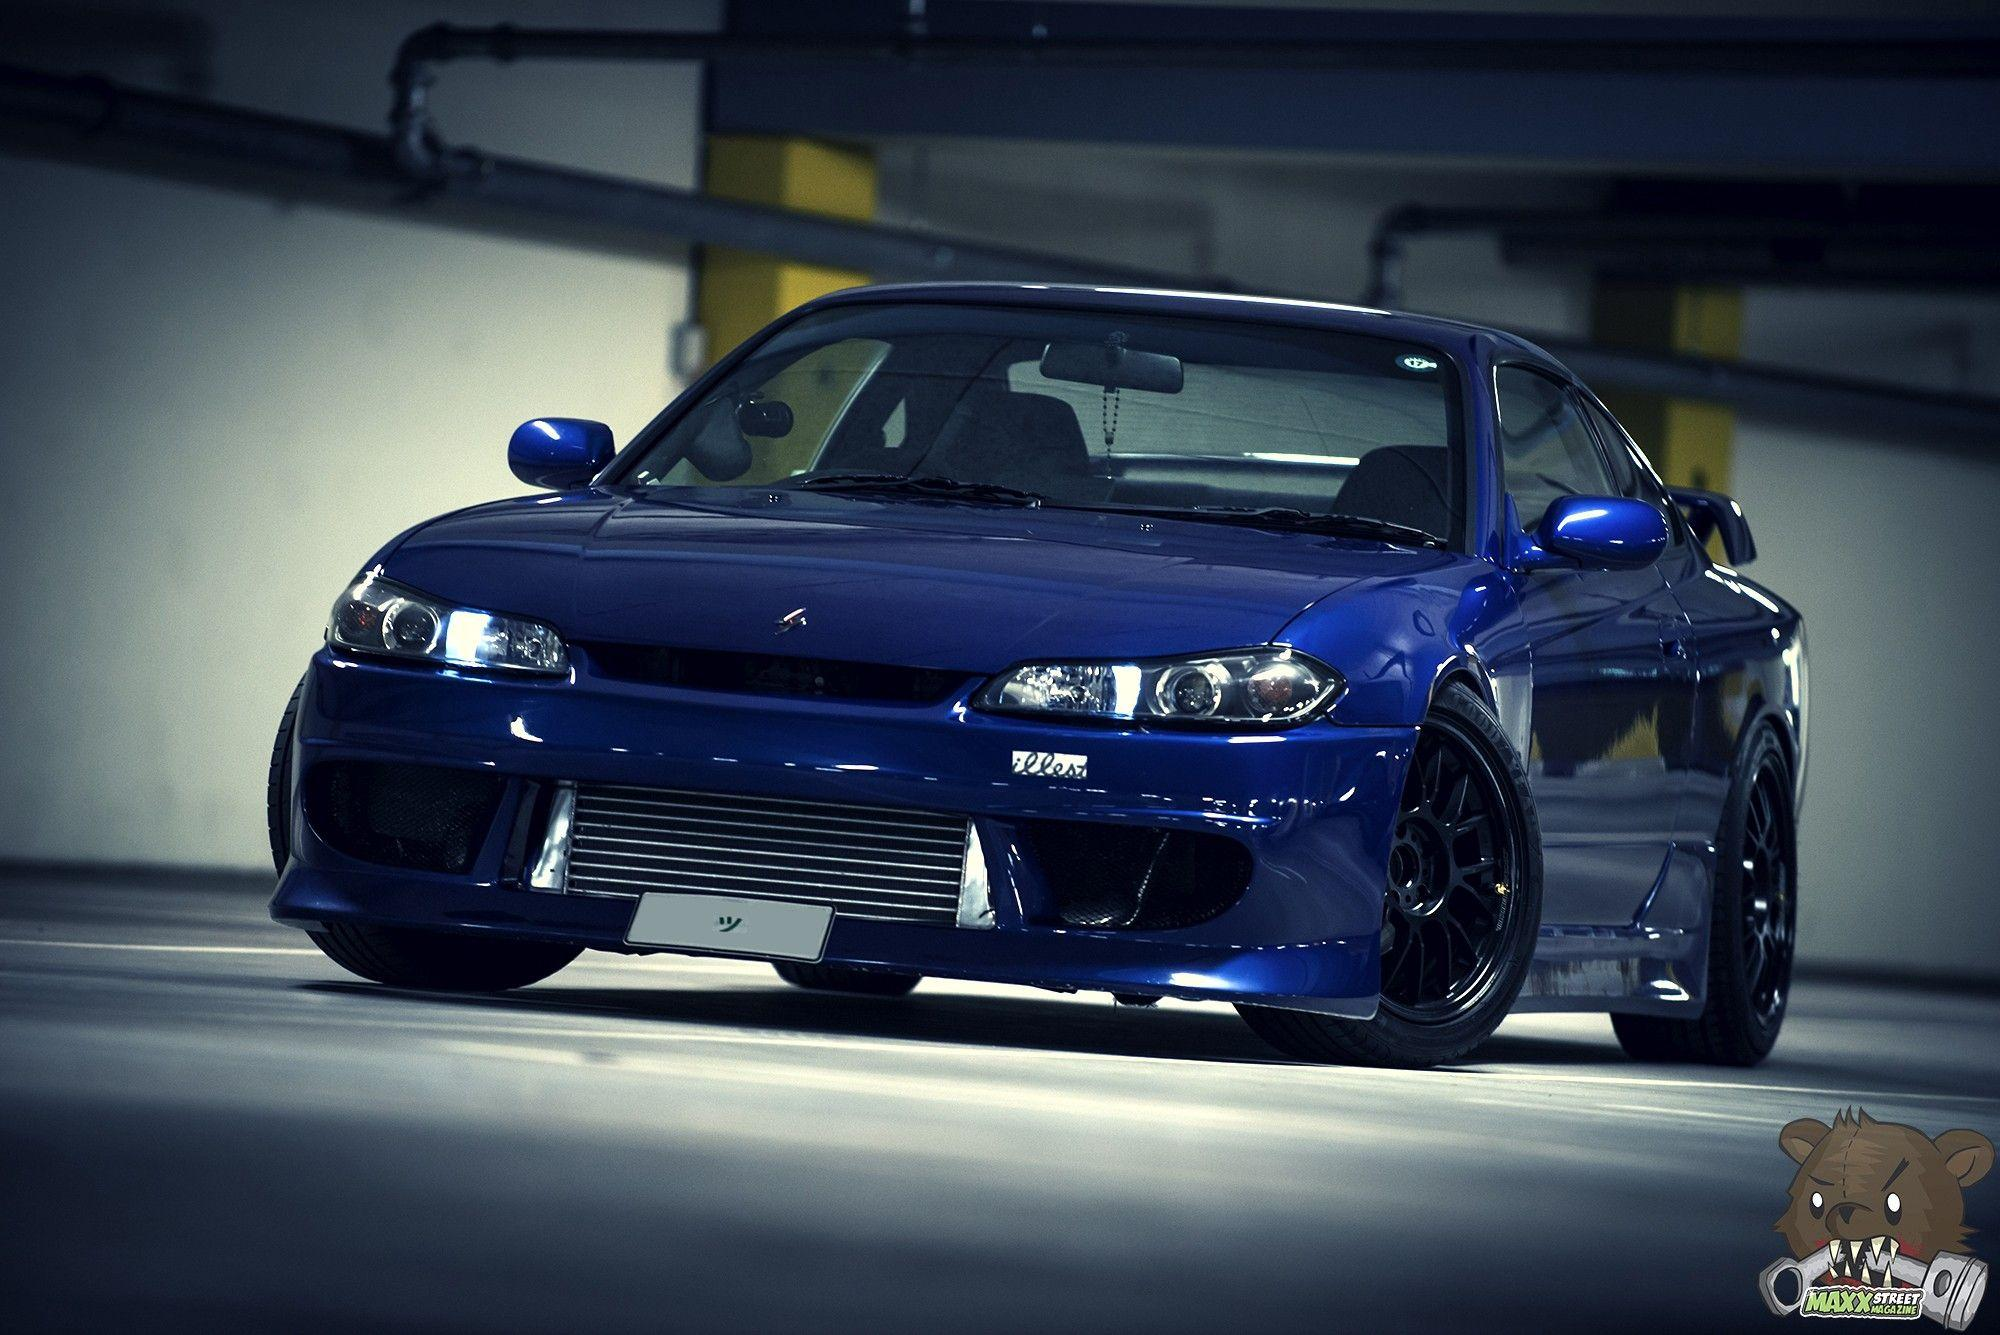 Nissan Silvia S15 Wallpapers Wallpaper Cave